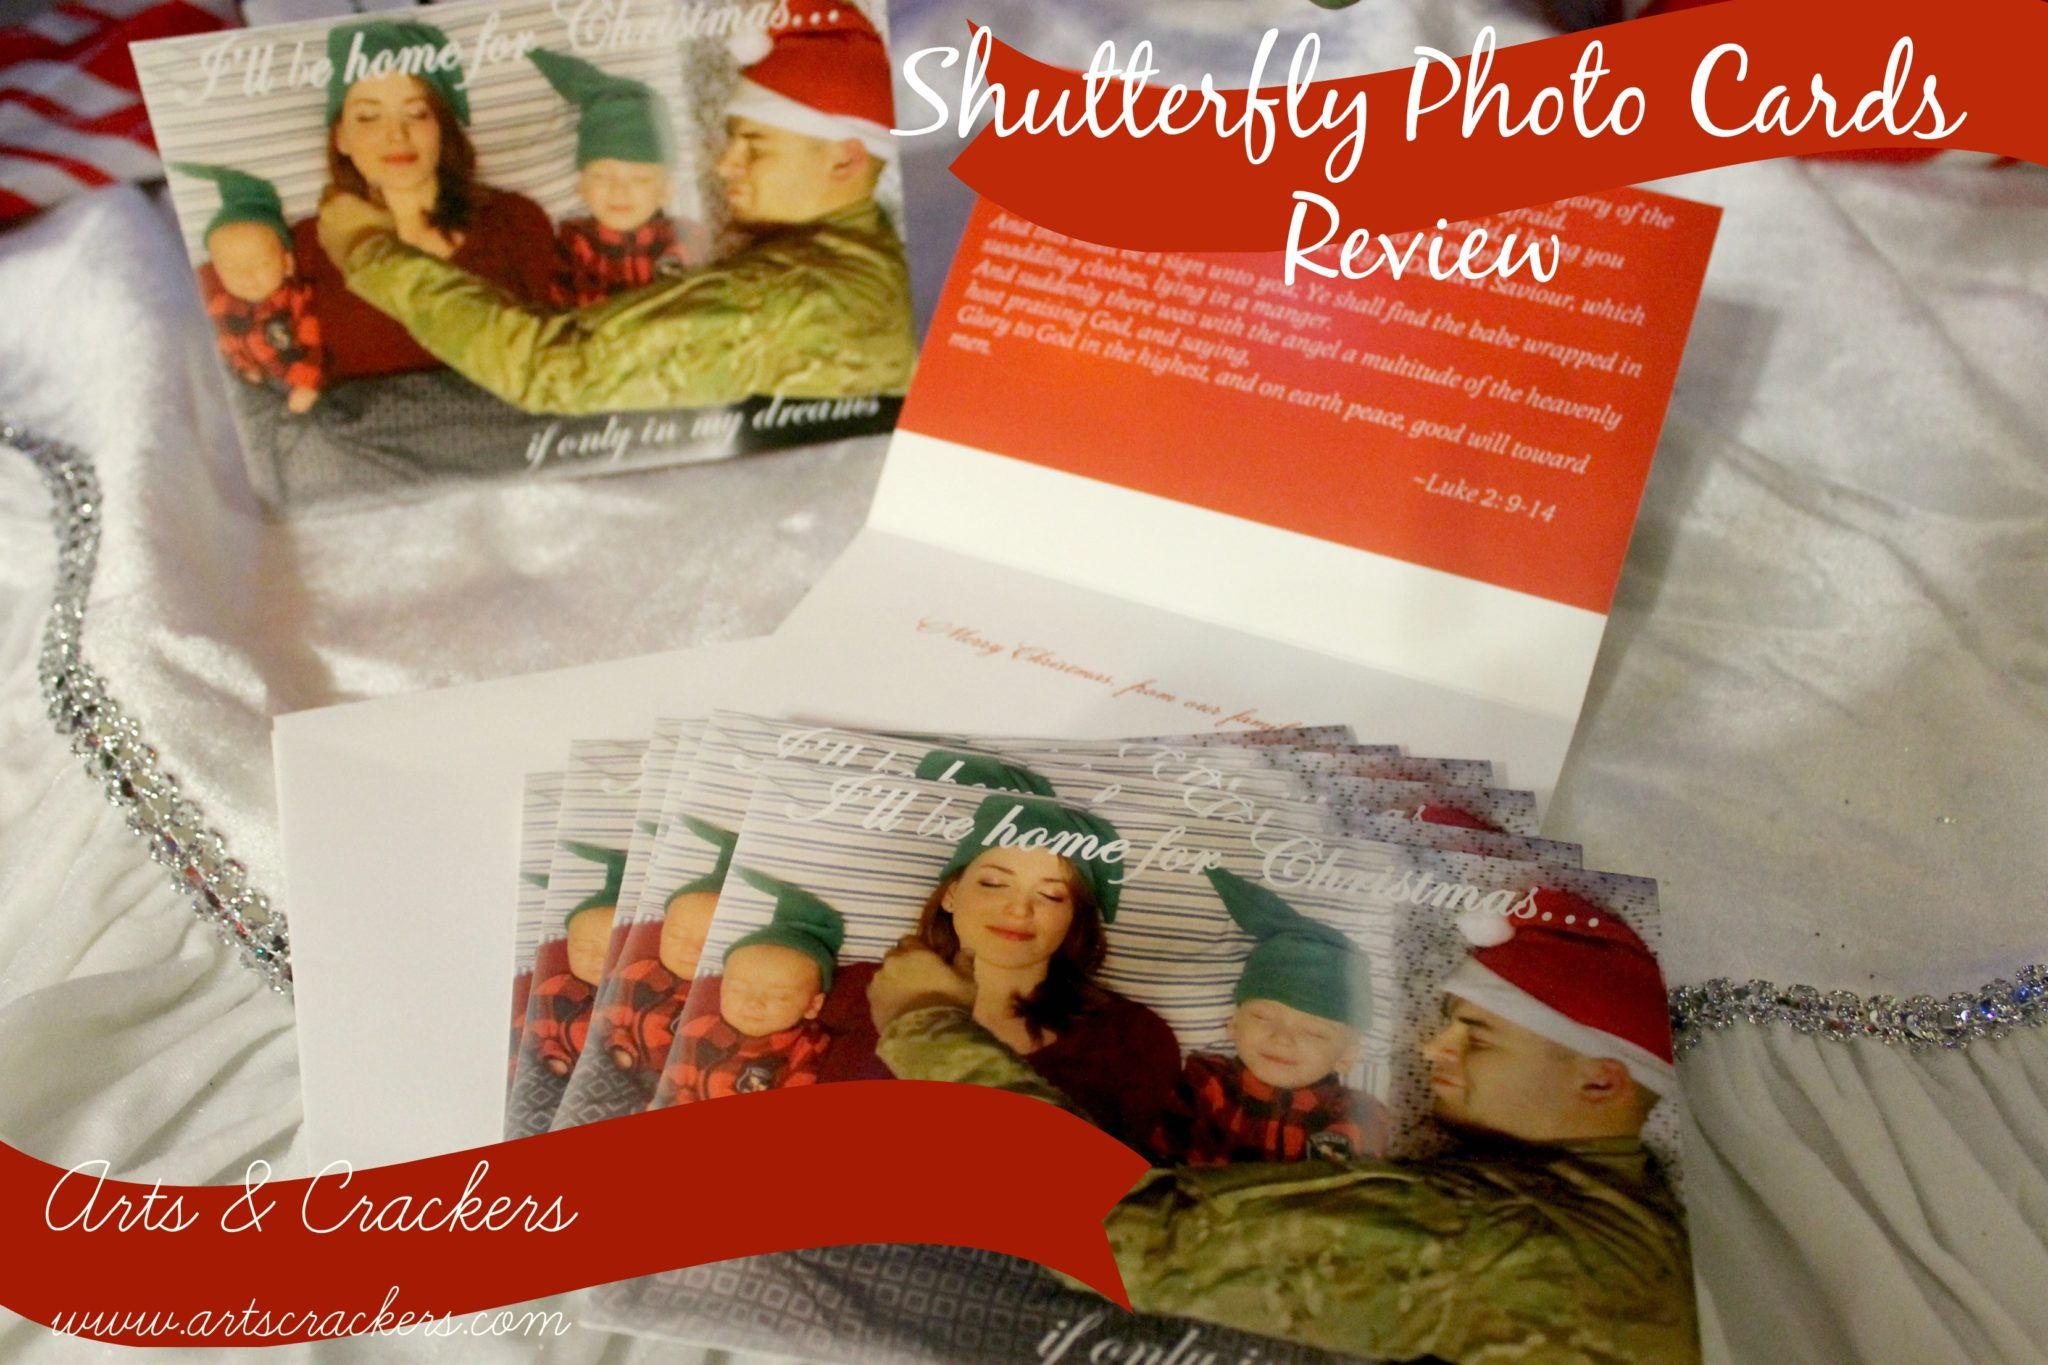 Shutterfly Review Photo Pillows And Christmas Cards